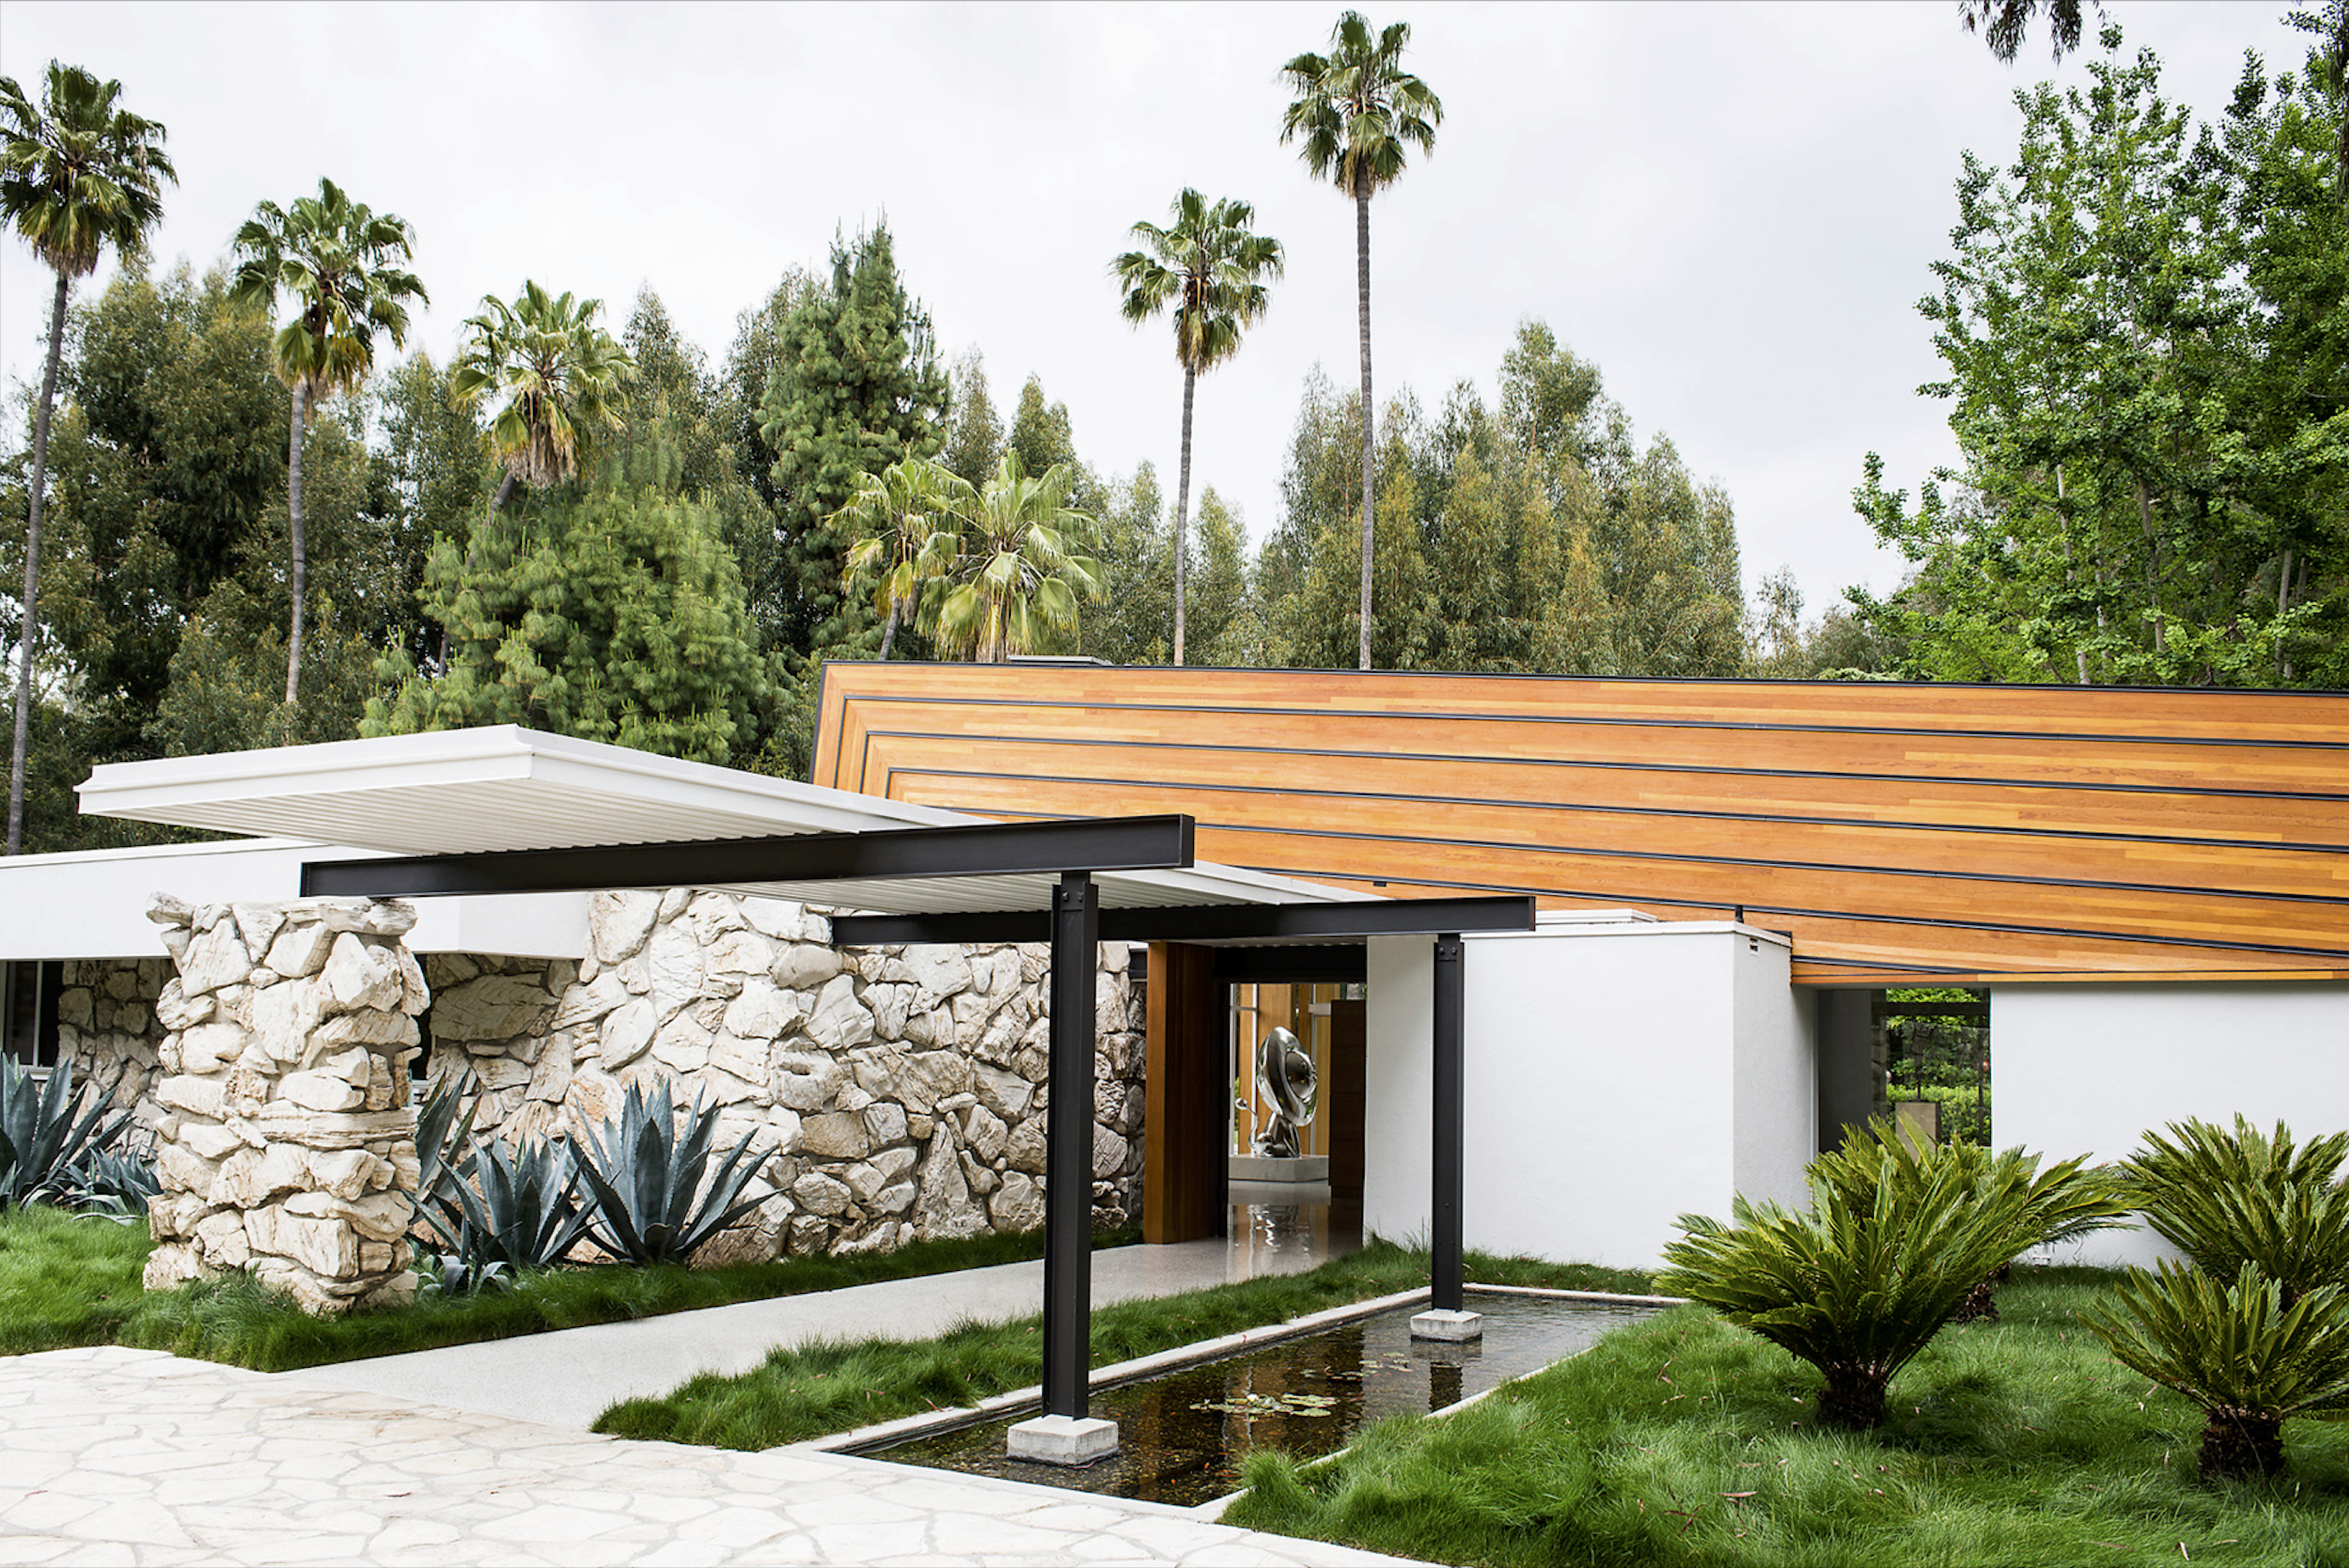 Gary Cooper House Los Angeles, California, Quincy Jones architect, 2012